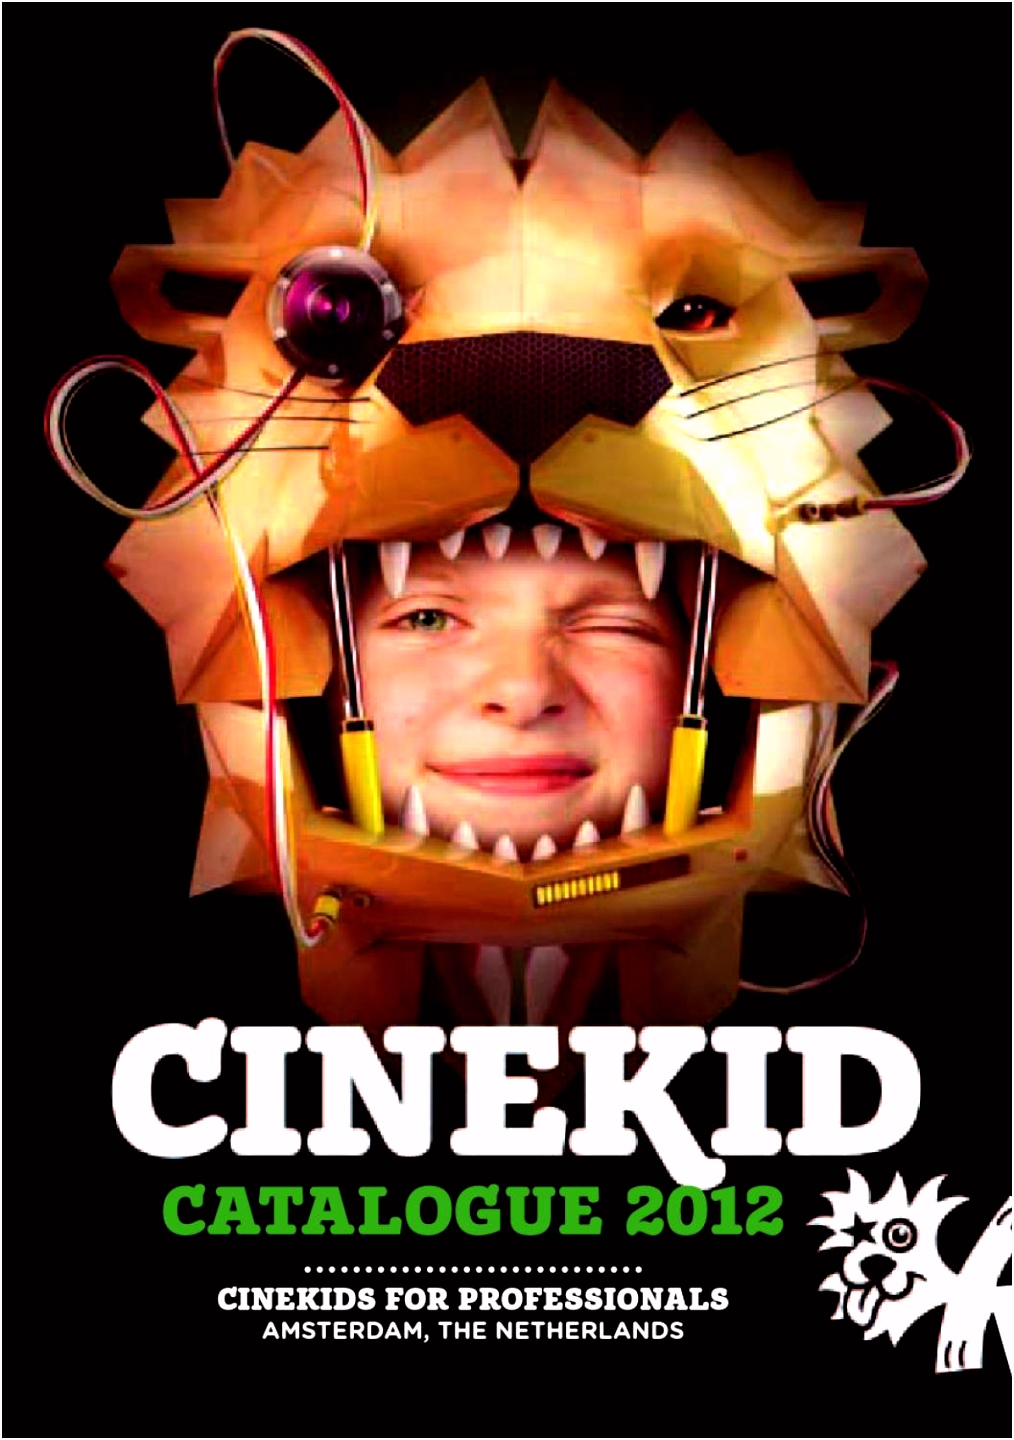 Cinekid Catalogue 2012 by Cinekid issuu